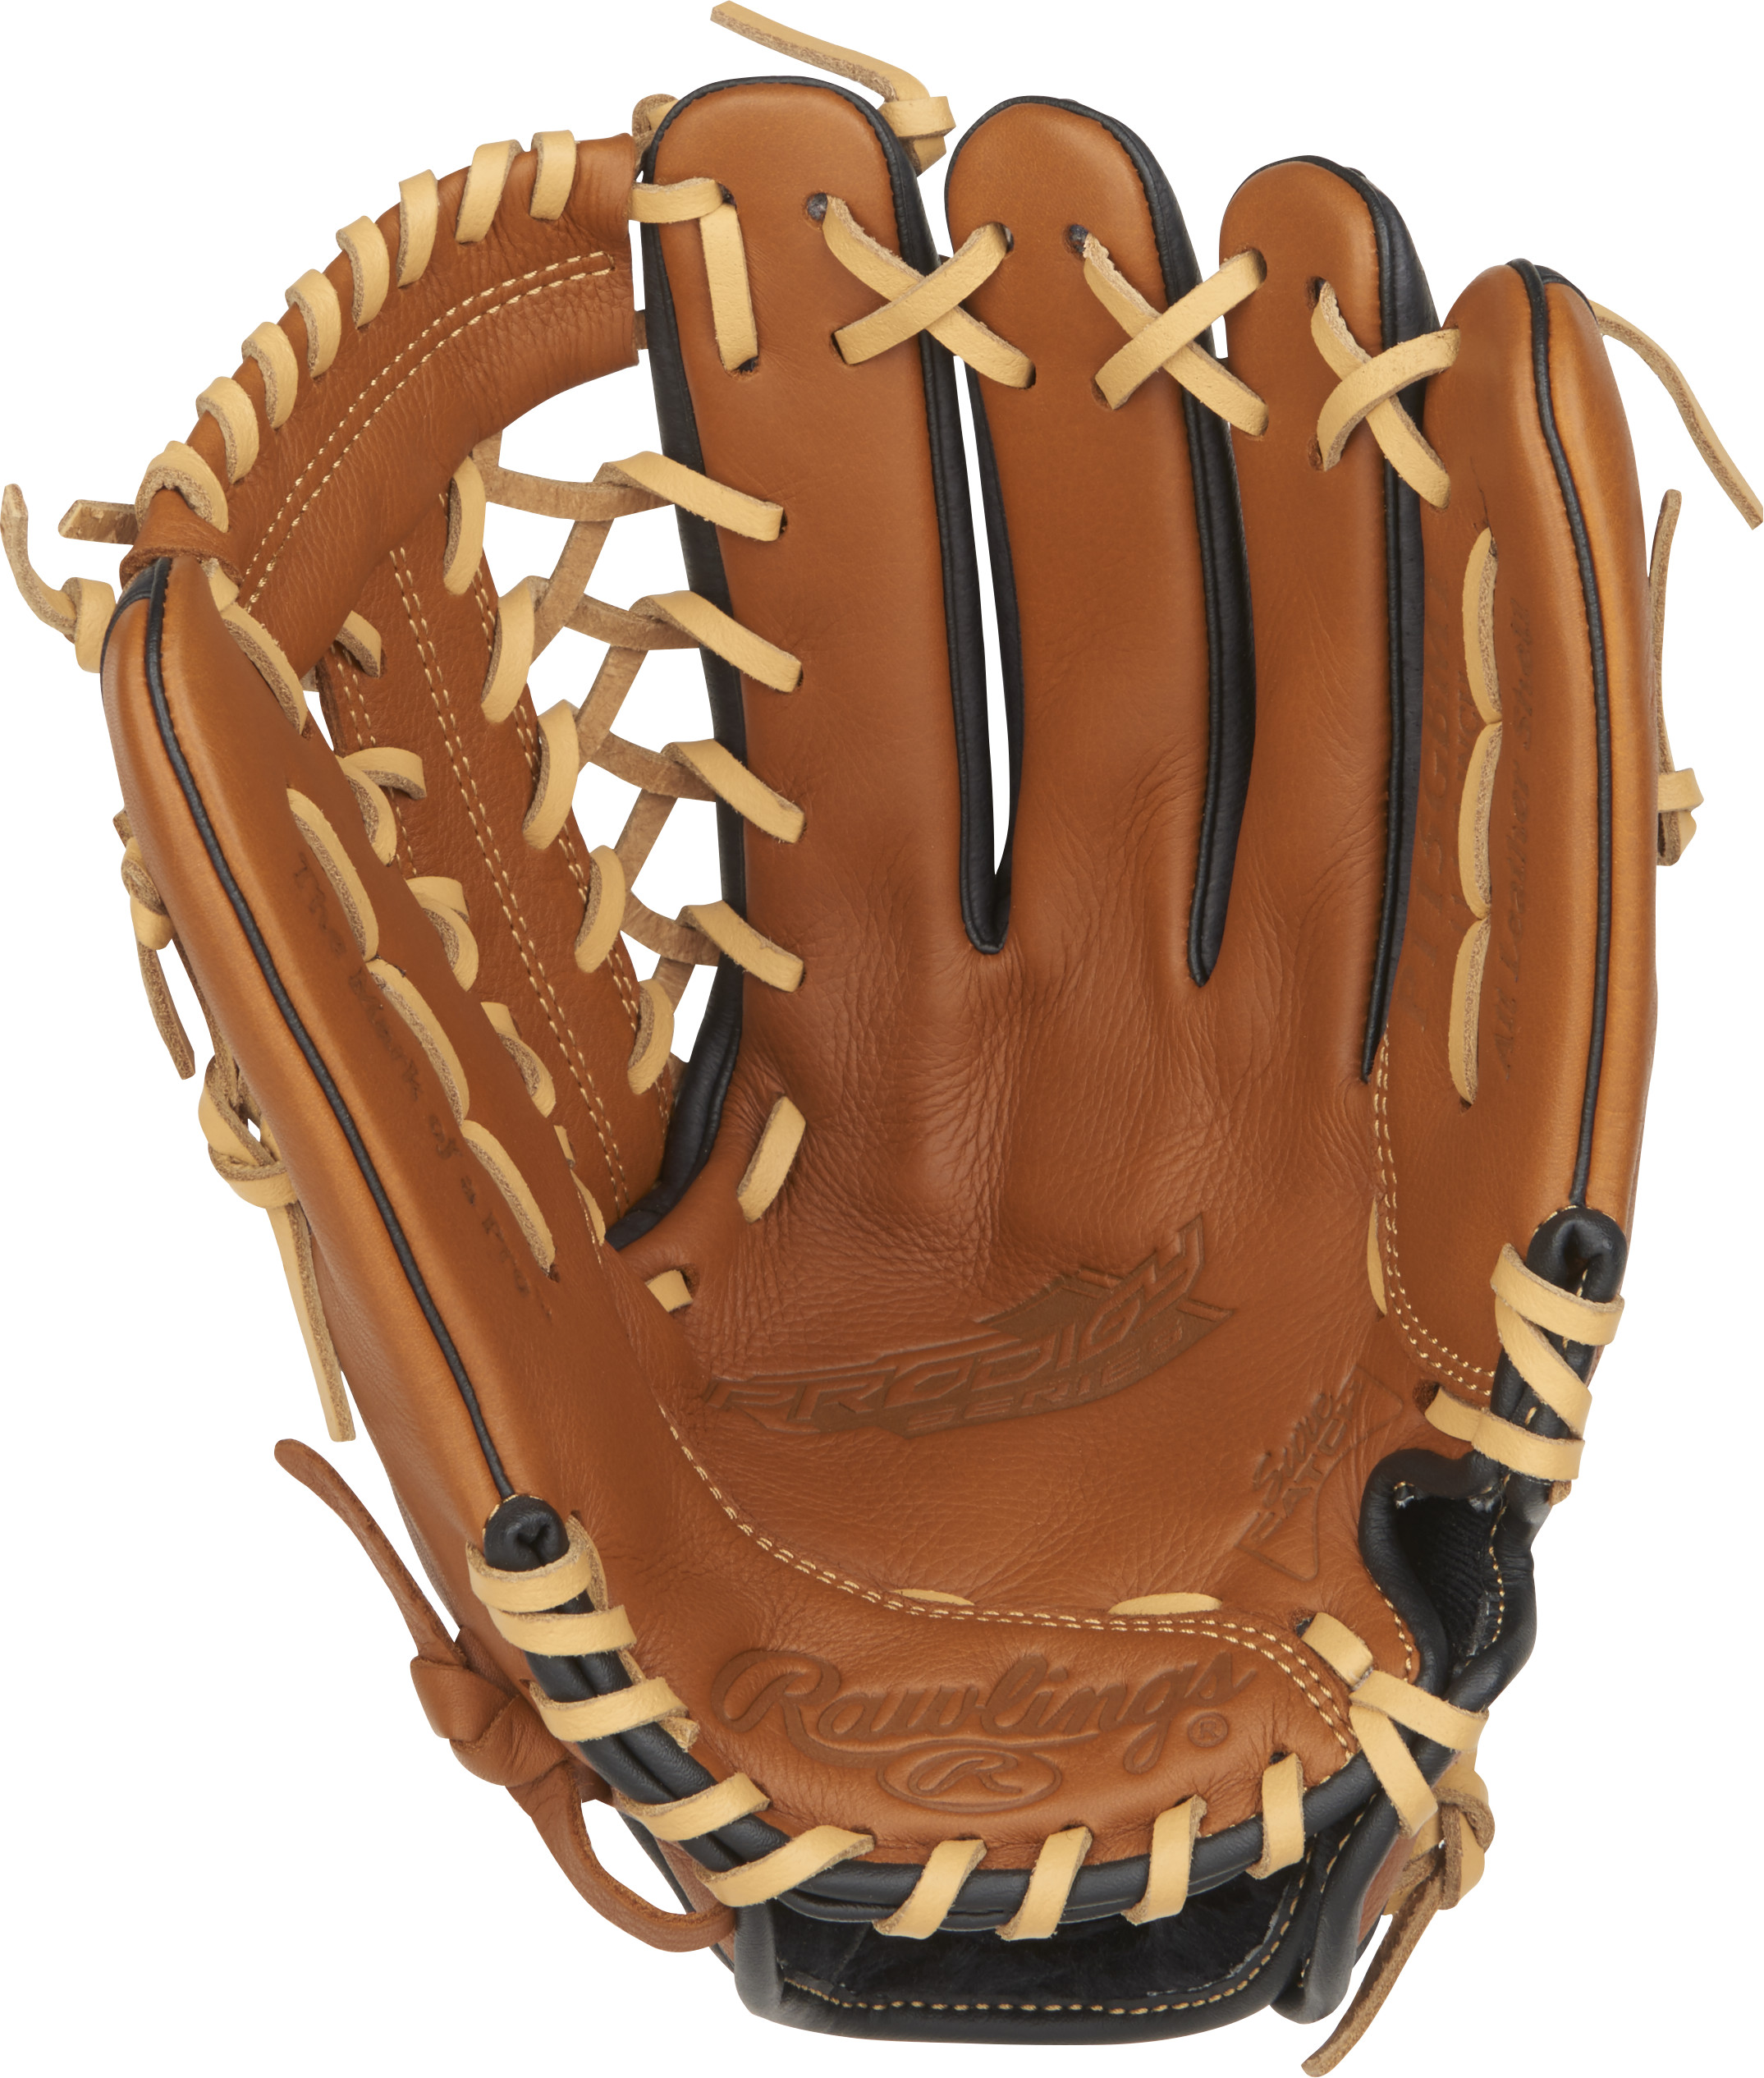 http://www.bestbatdeals.com/images/gloves/rawlings/P115GBMT-1.jpg